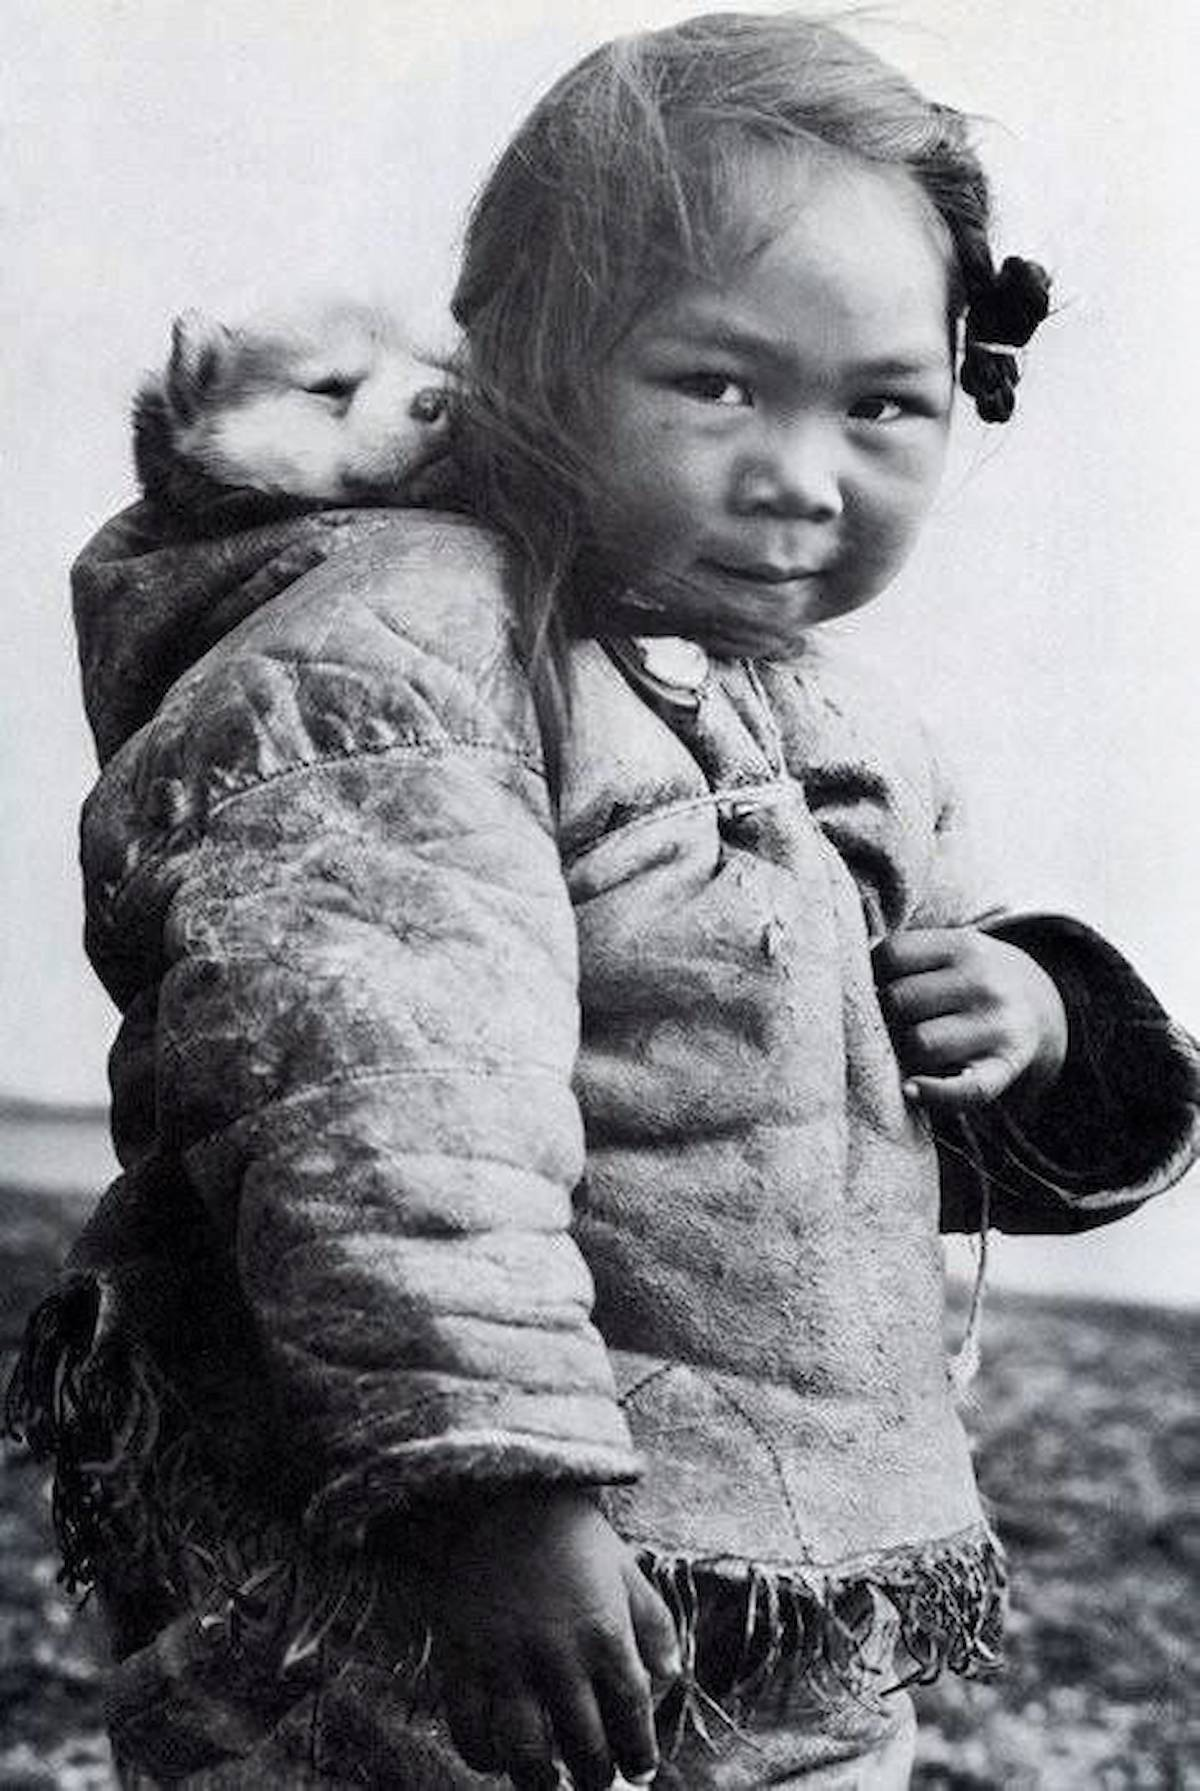 Eskimo inuit chukchi baby husky puppy Kate Moss b&w fashion photography timeless inspo textures body timeless lindbergh newton avedon demarchelier meisel Alaia Chanel